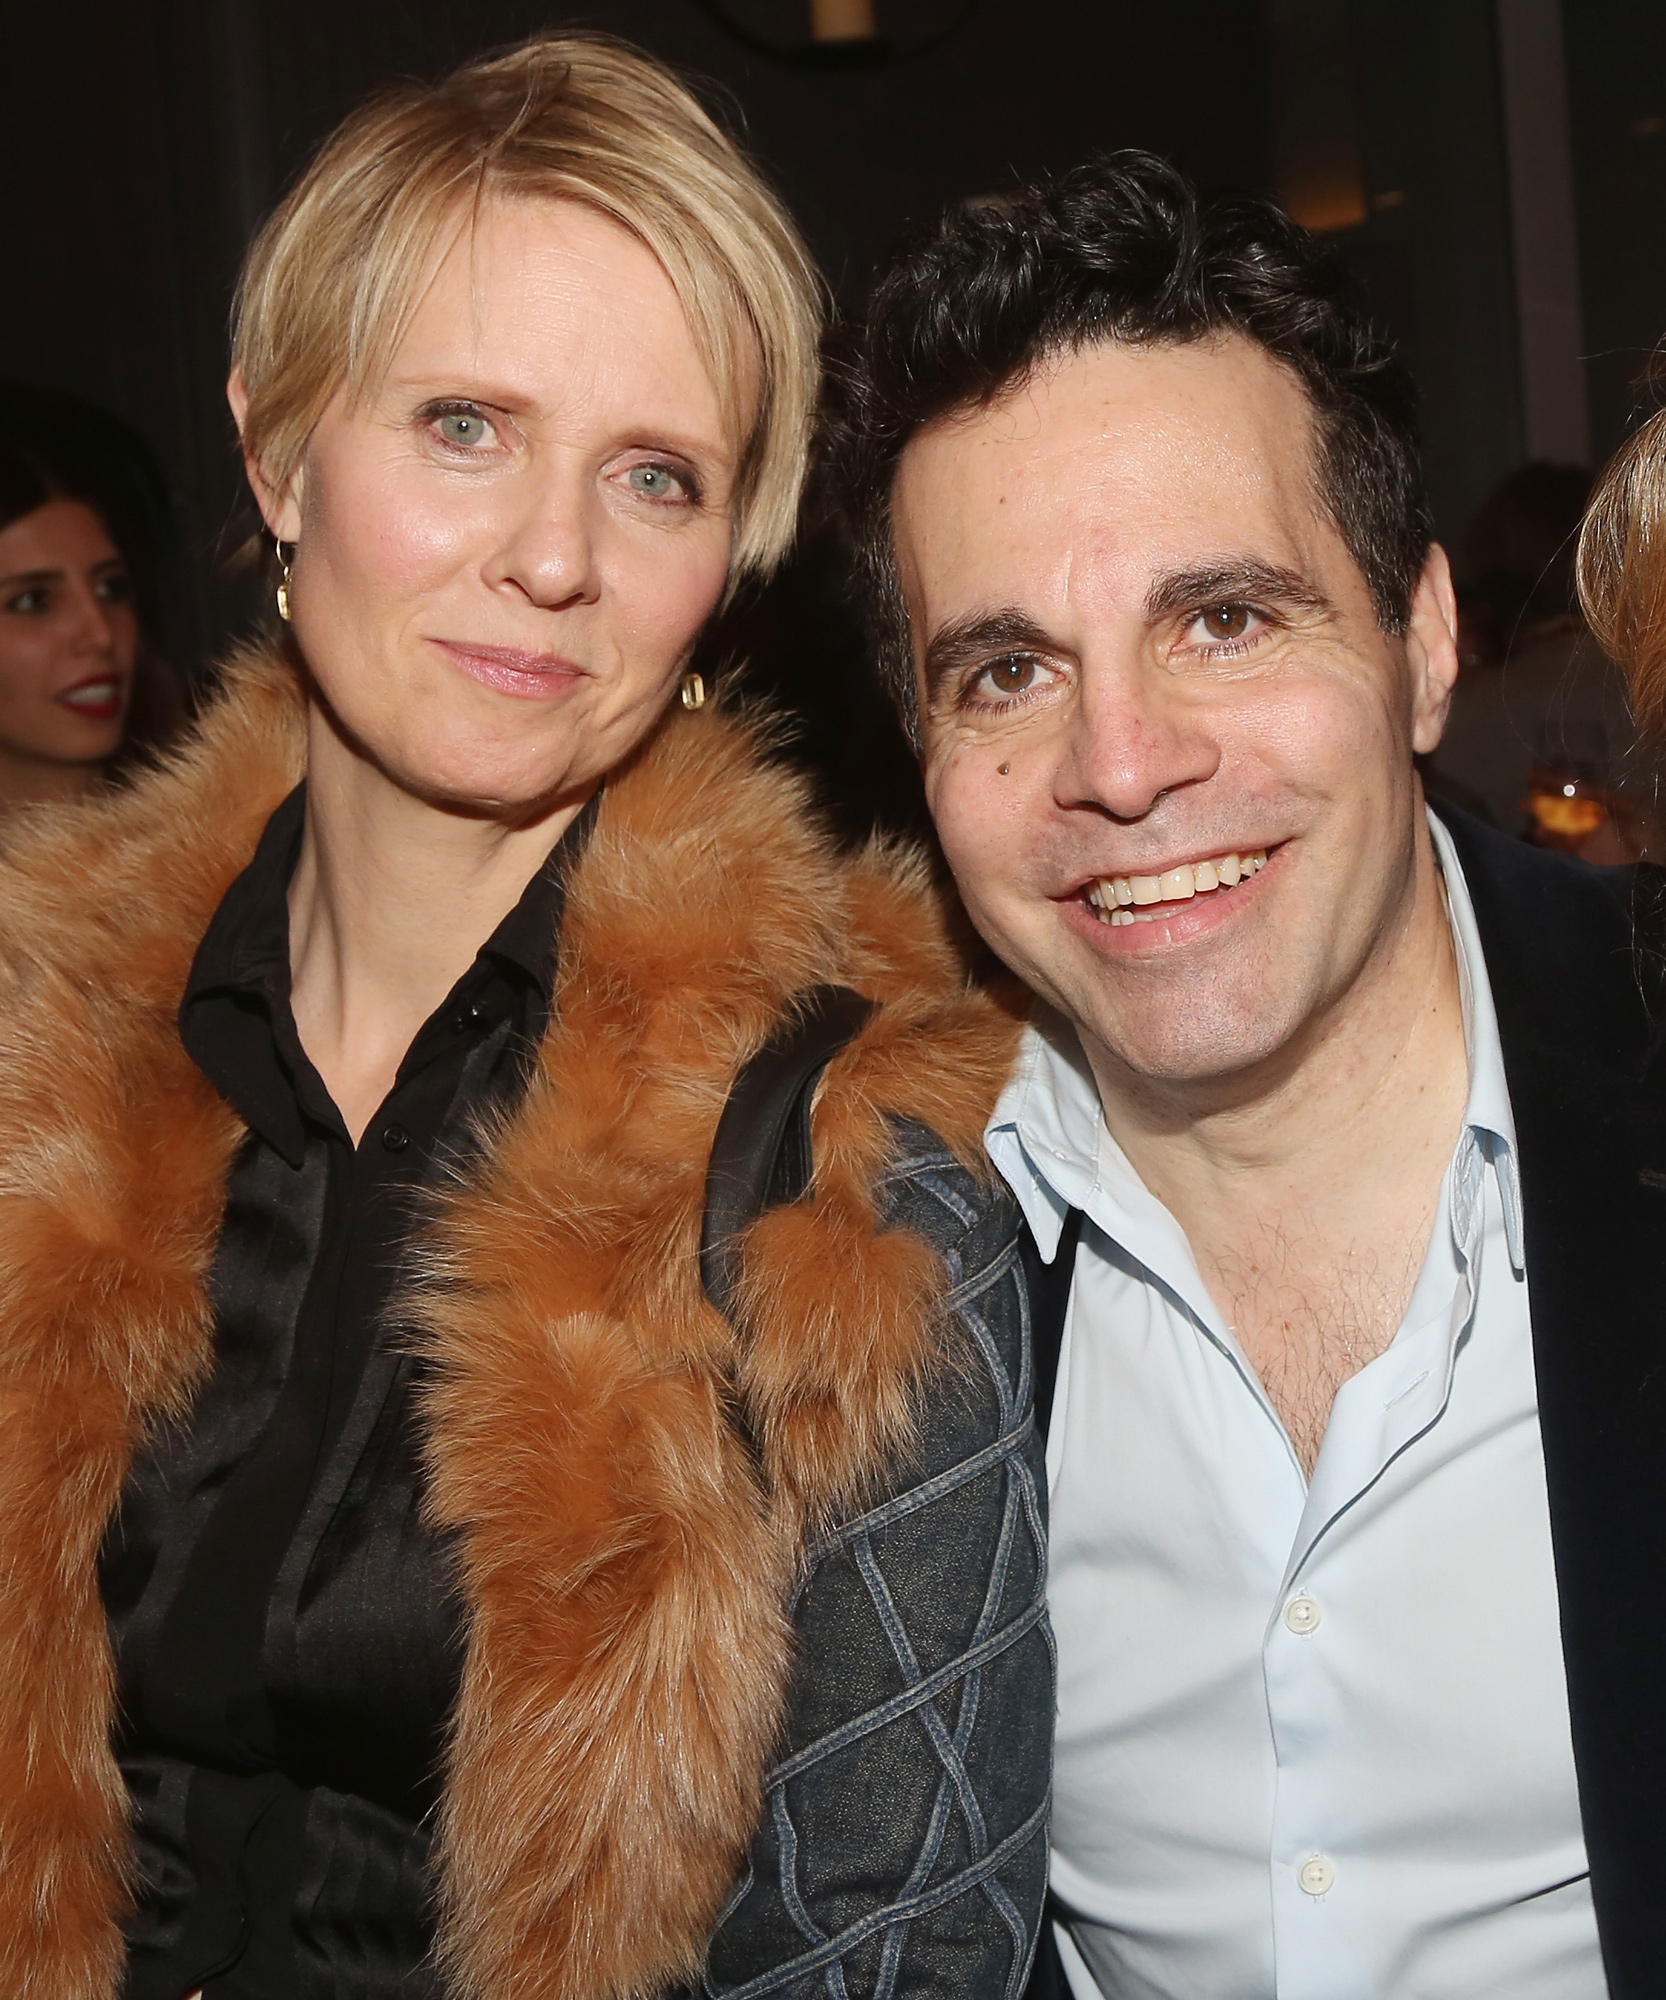 <p>Cynthia Nixon, Mario Cantone Evening at The Talk House - EMBED</p>